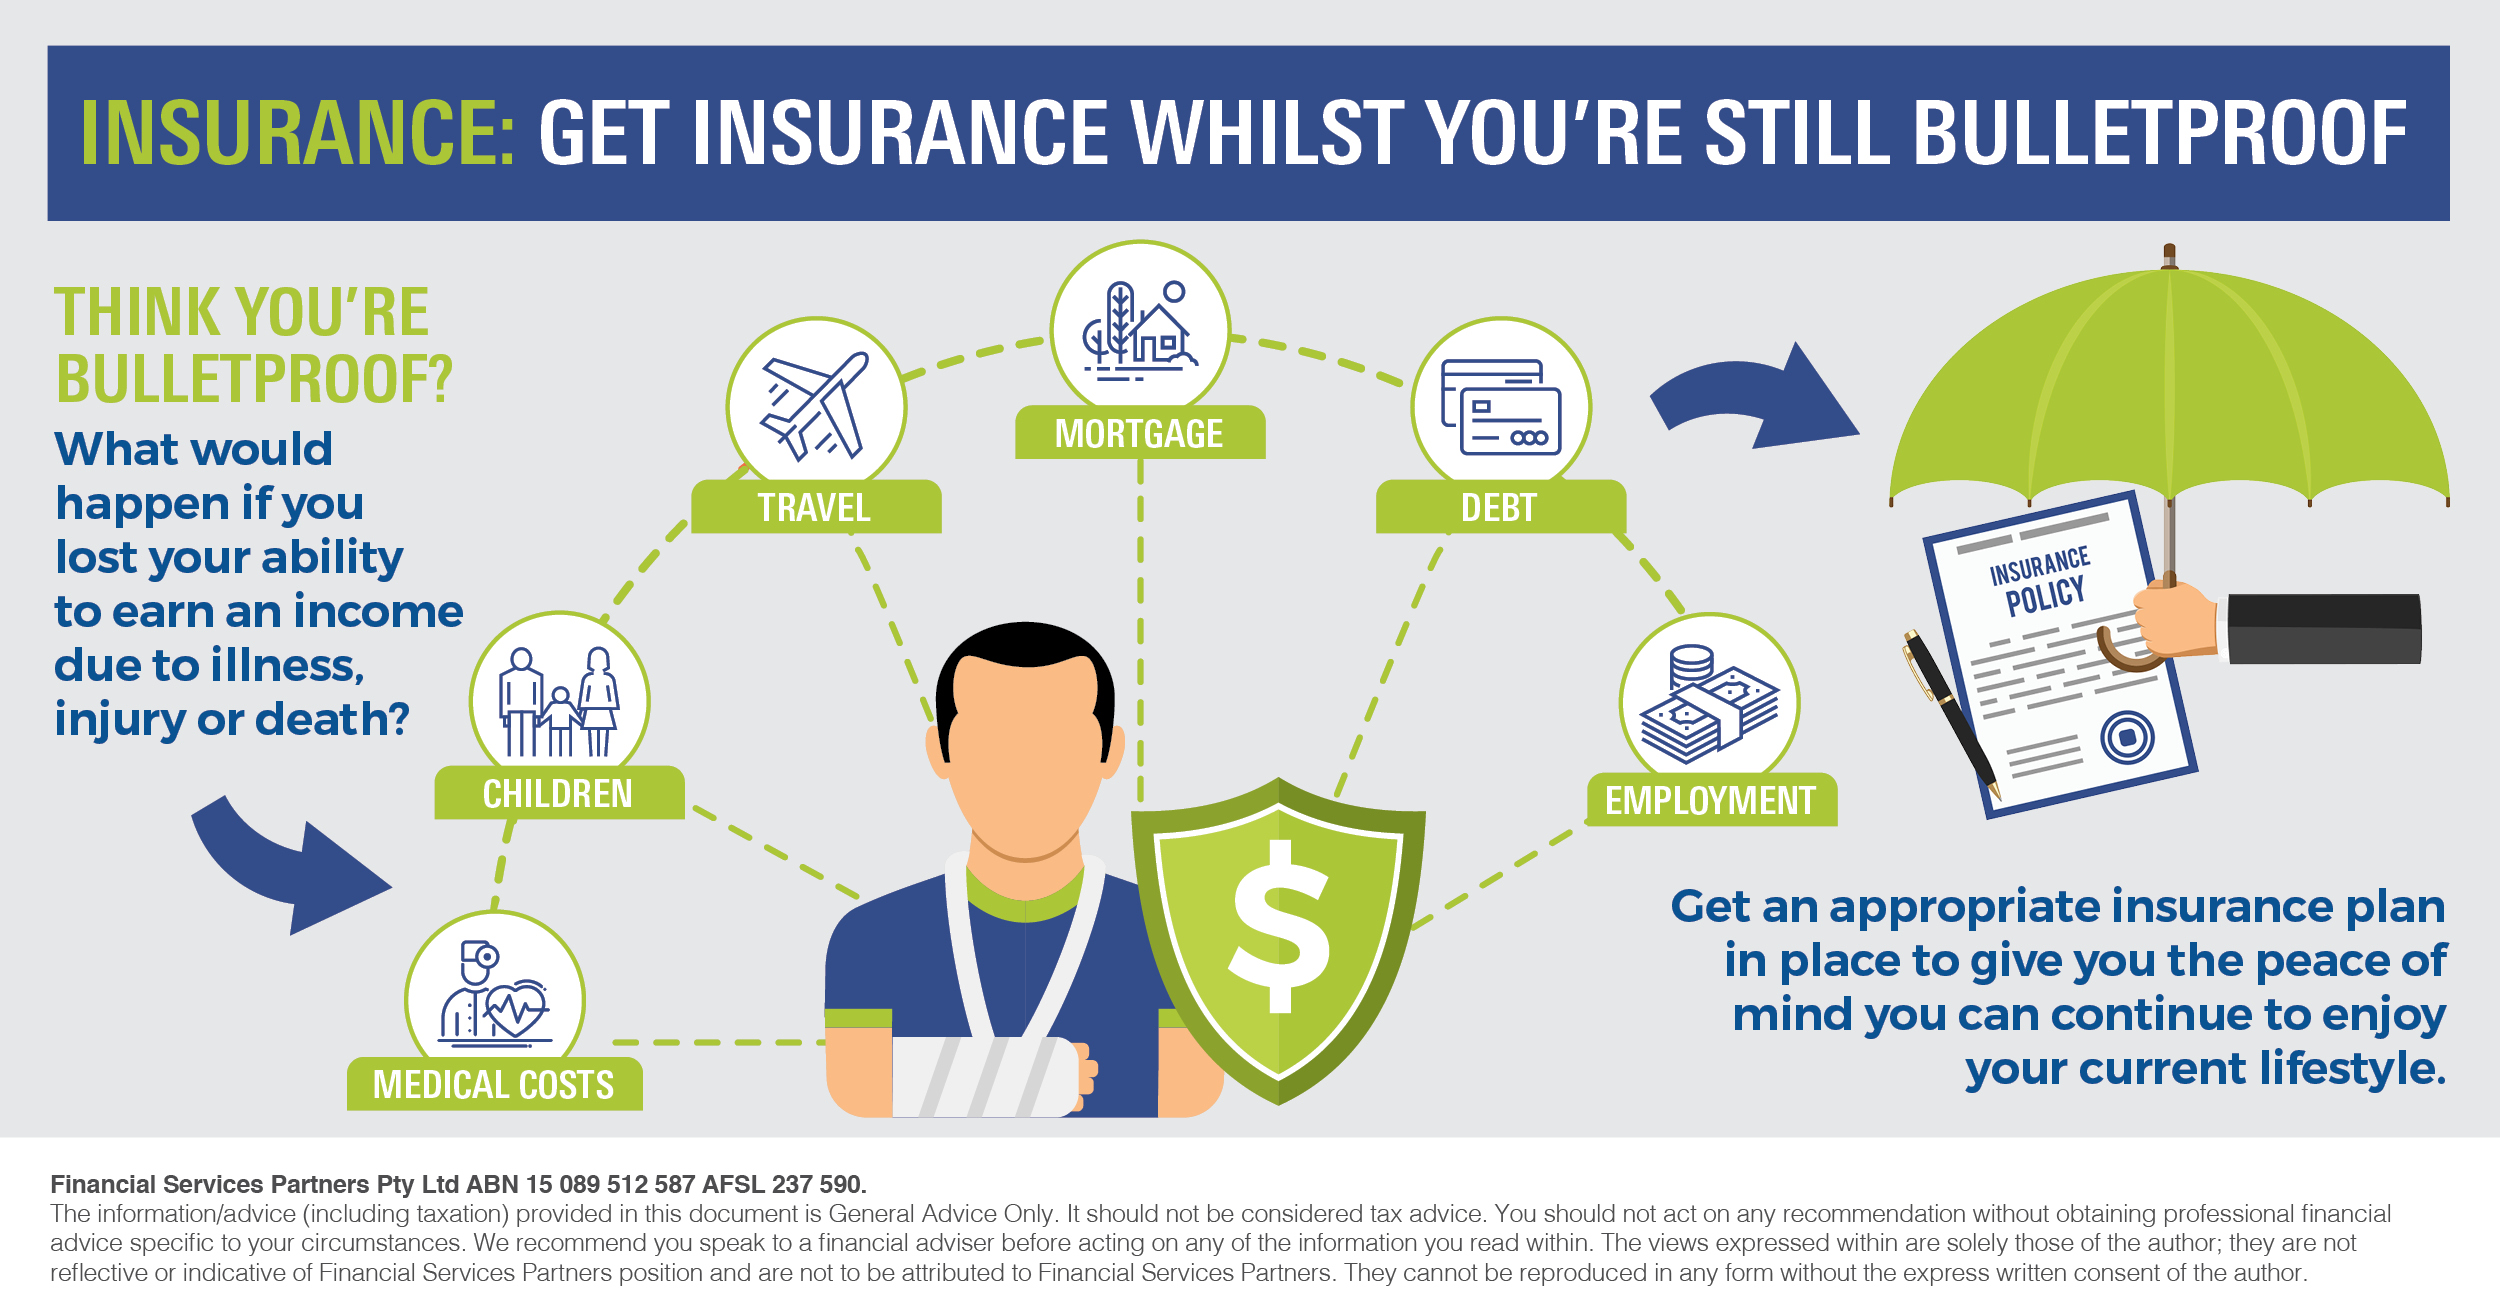 Infographic_Insurance_Get insurance whilst you're still bulletproof_FSP